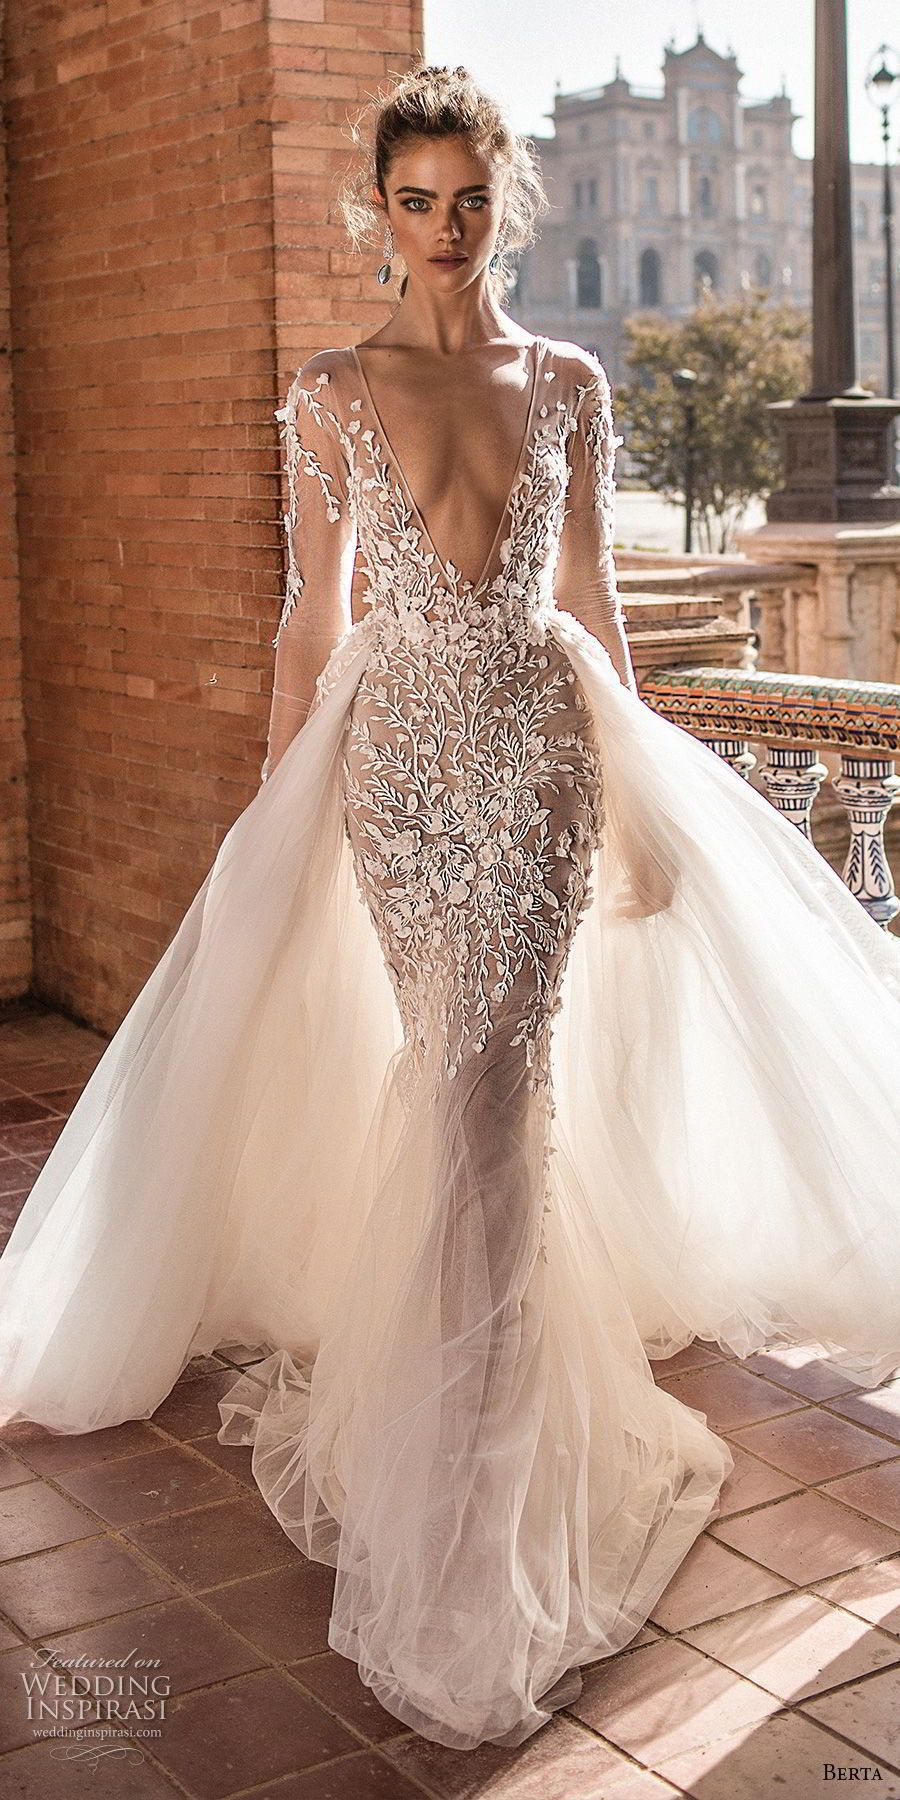 Berta fall wedding dresses vestidos pinterest wedding